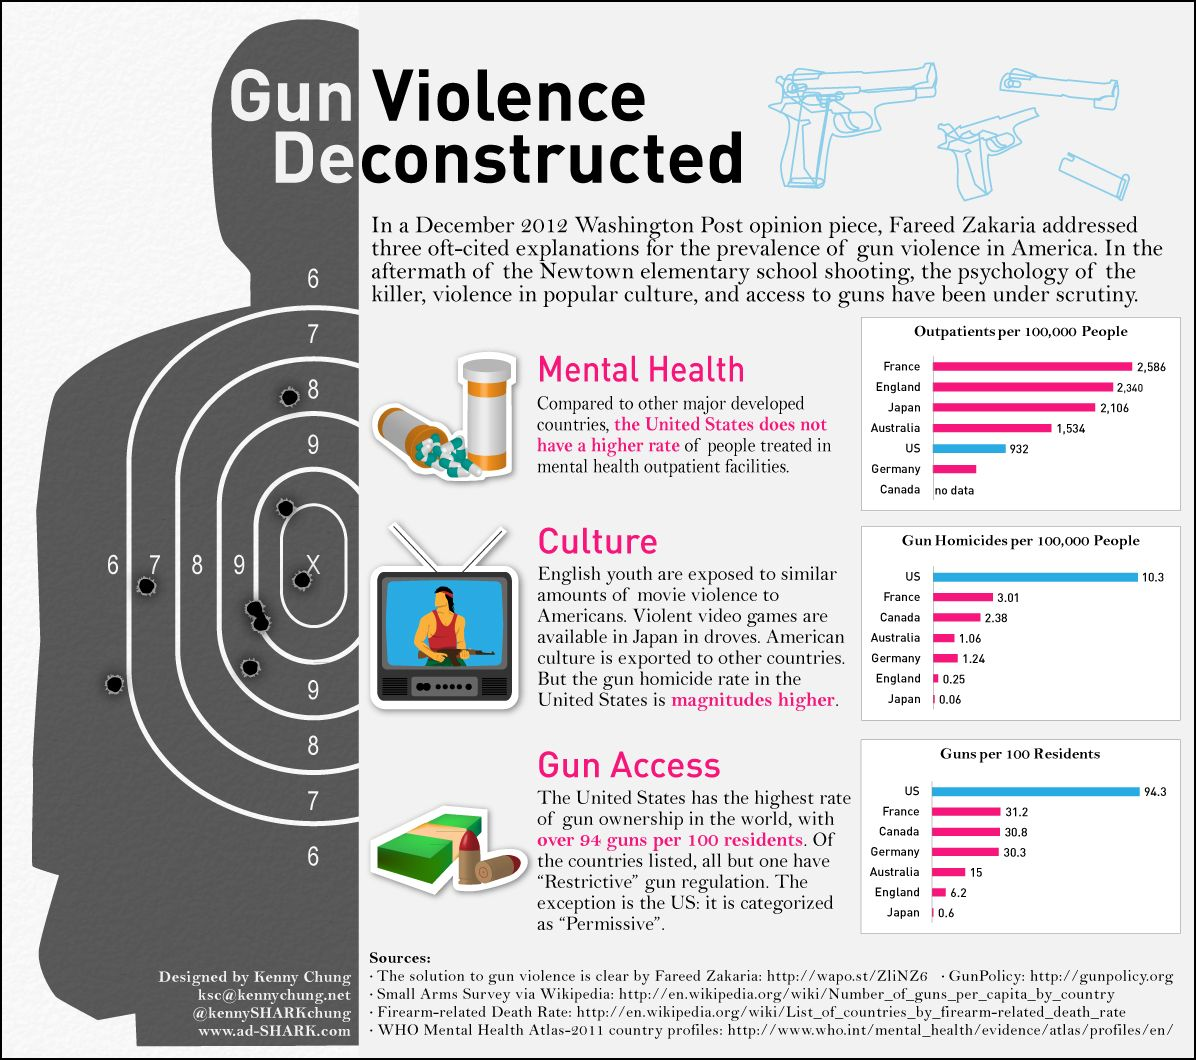 Gun Violence Deconstructed: America Vs. The World